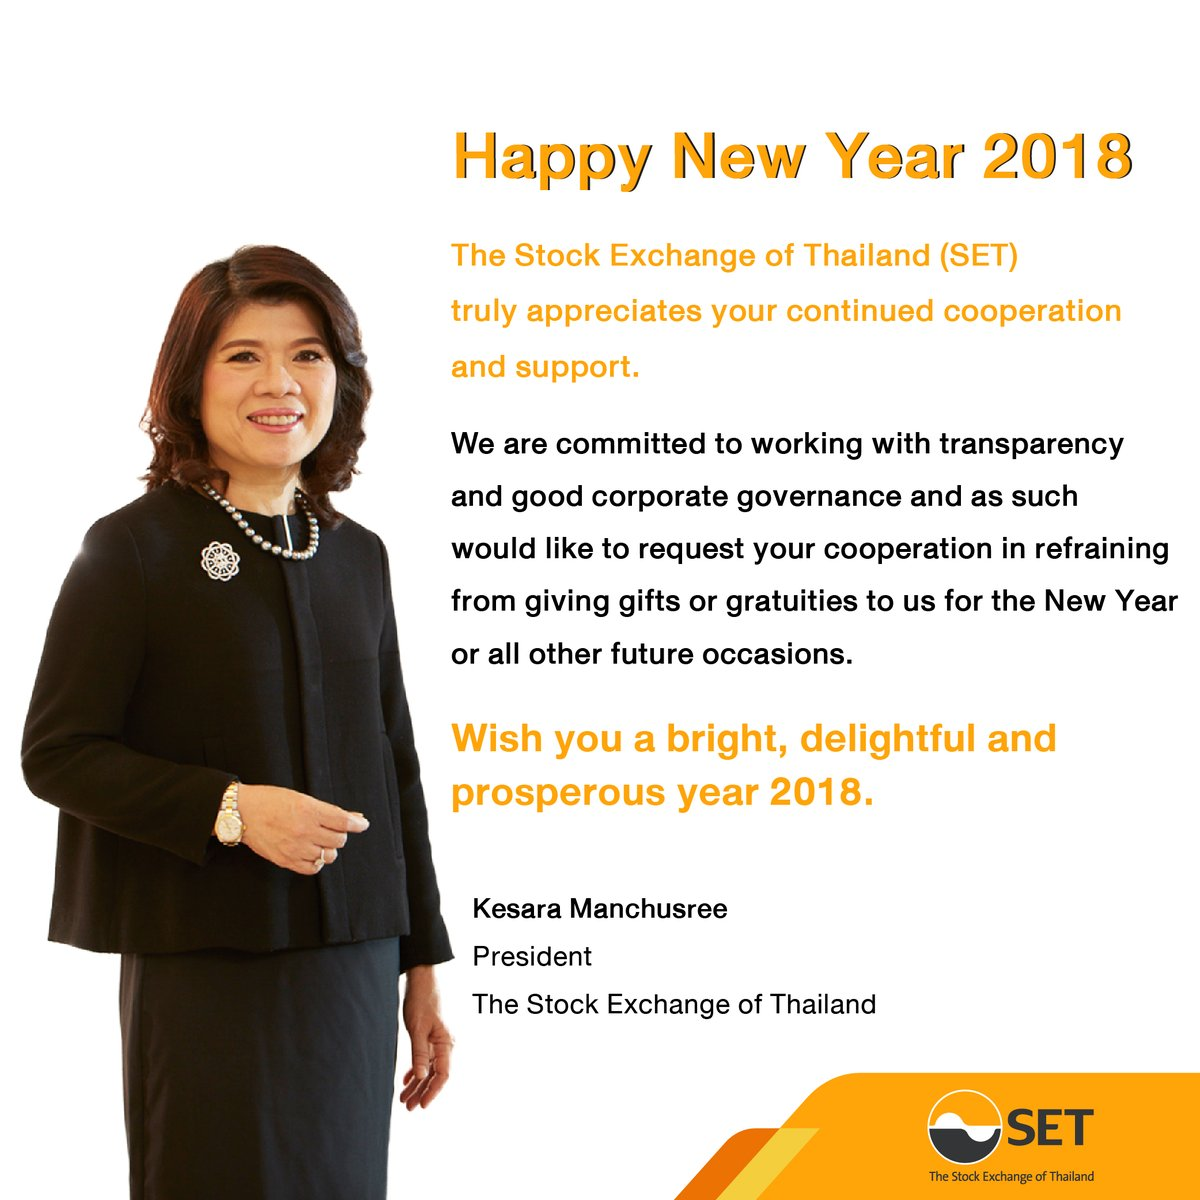 Happy New Year 2018   SET truly appreciates your continued cooperation and suppo…